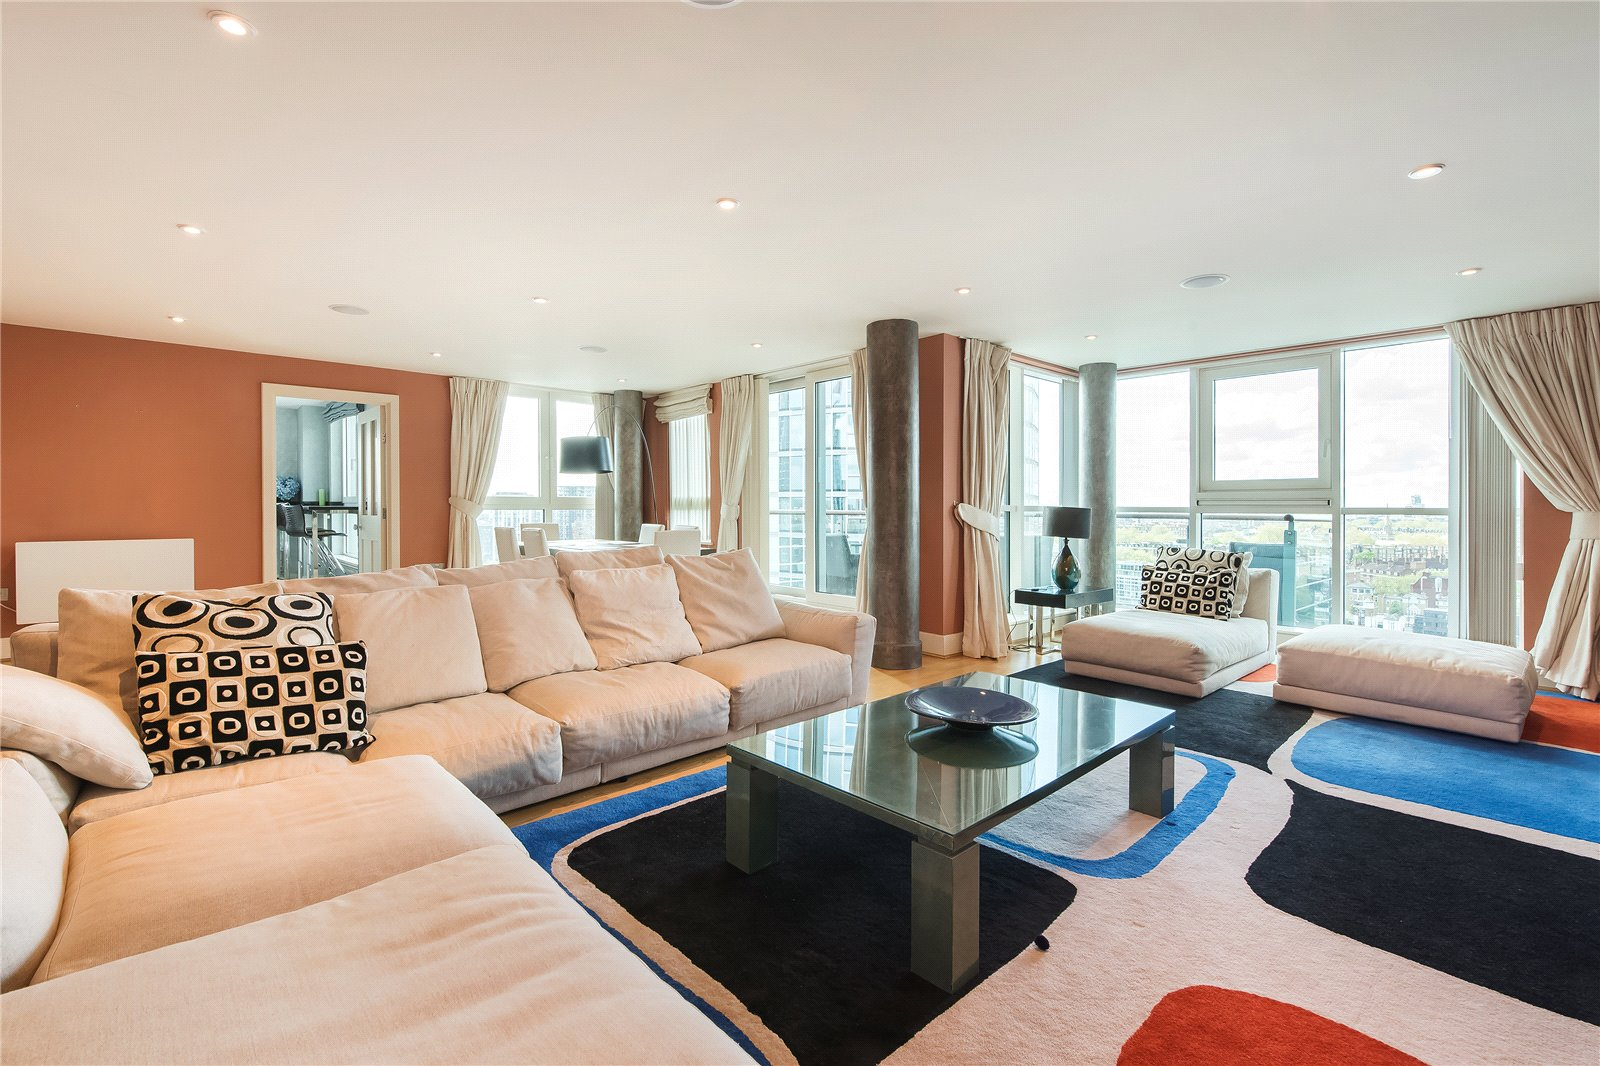 Apartment for Sale at St. George Wharf, Vauxhall, London, SW8 St. George Wharf, Vauxhall, London, SW8